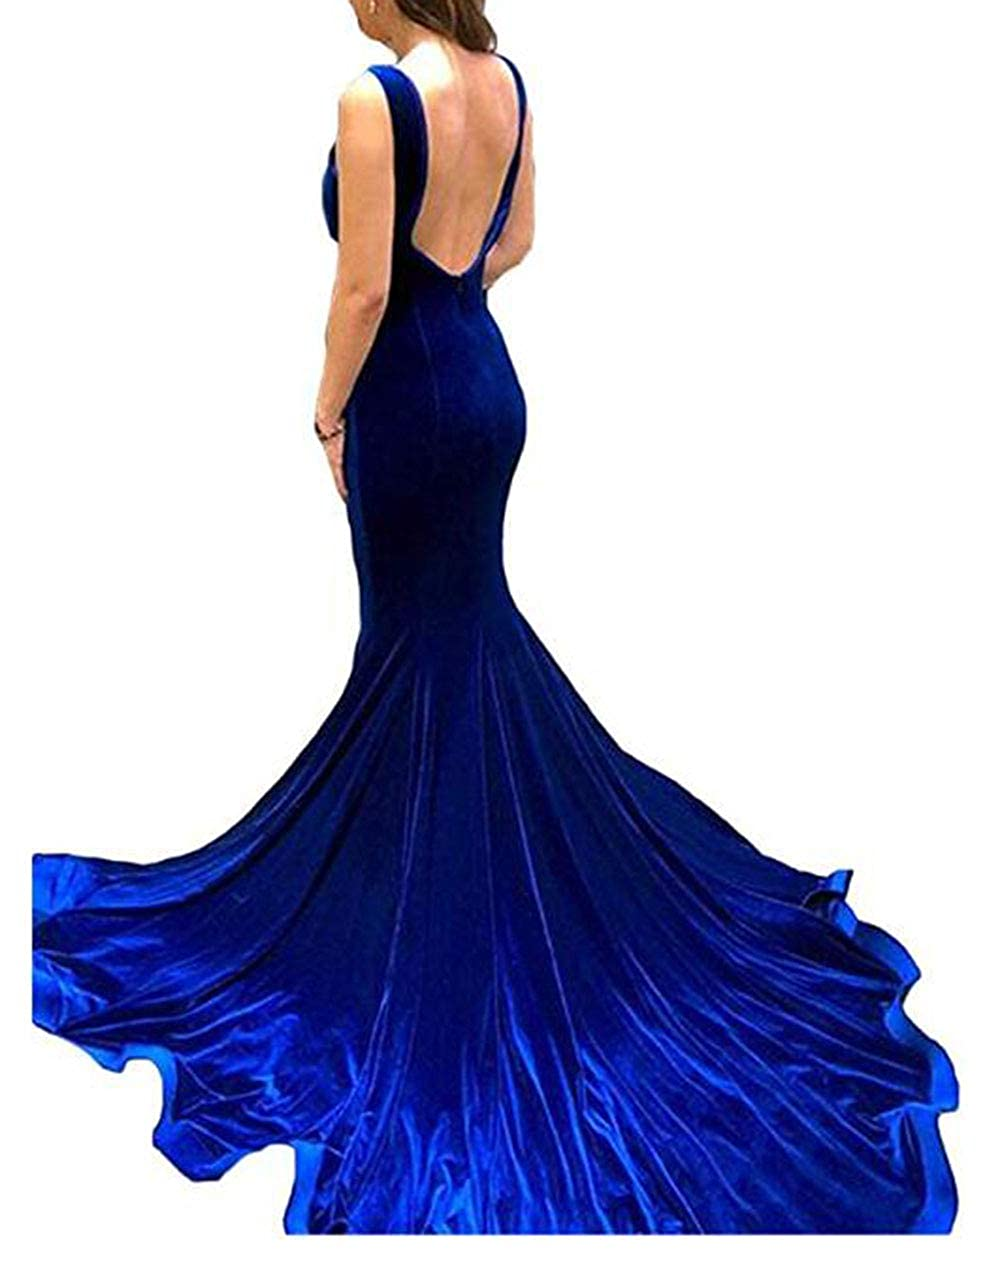 Royal bluee alilith.Z Sexy Spaghetti Strap Velvet Prom Dresses Mermaid Long Formal Evening Dresses Party Gowns for Women with Slit